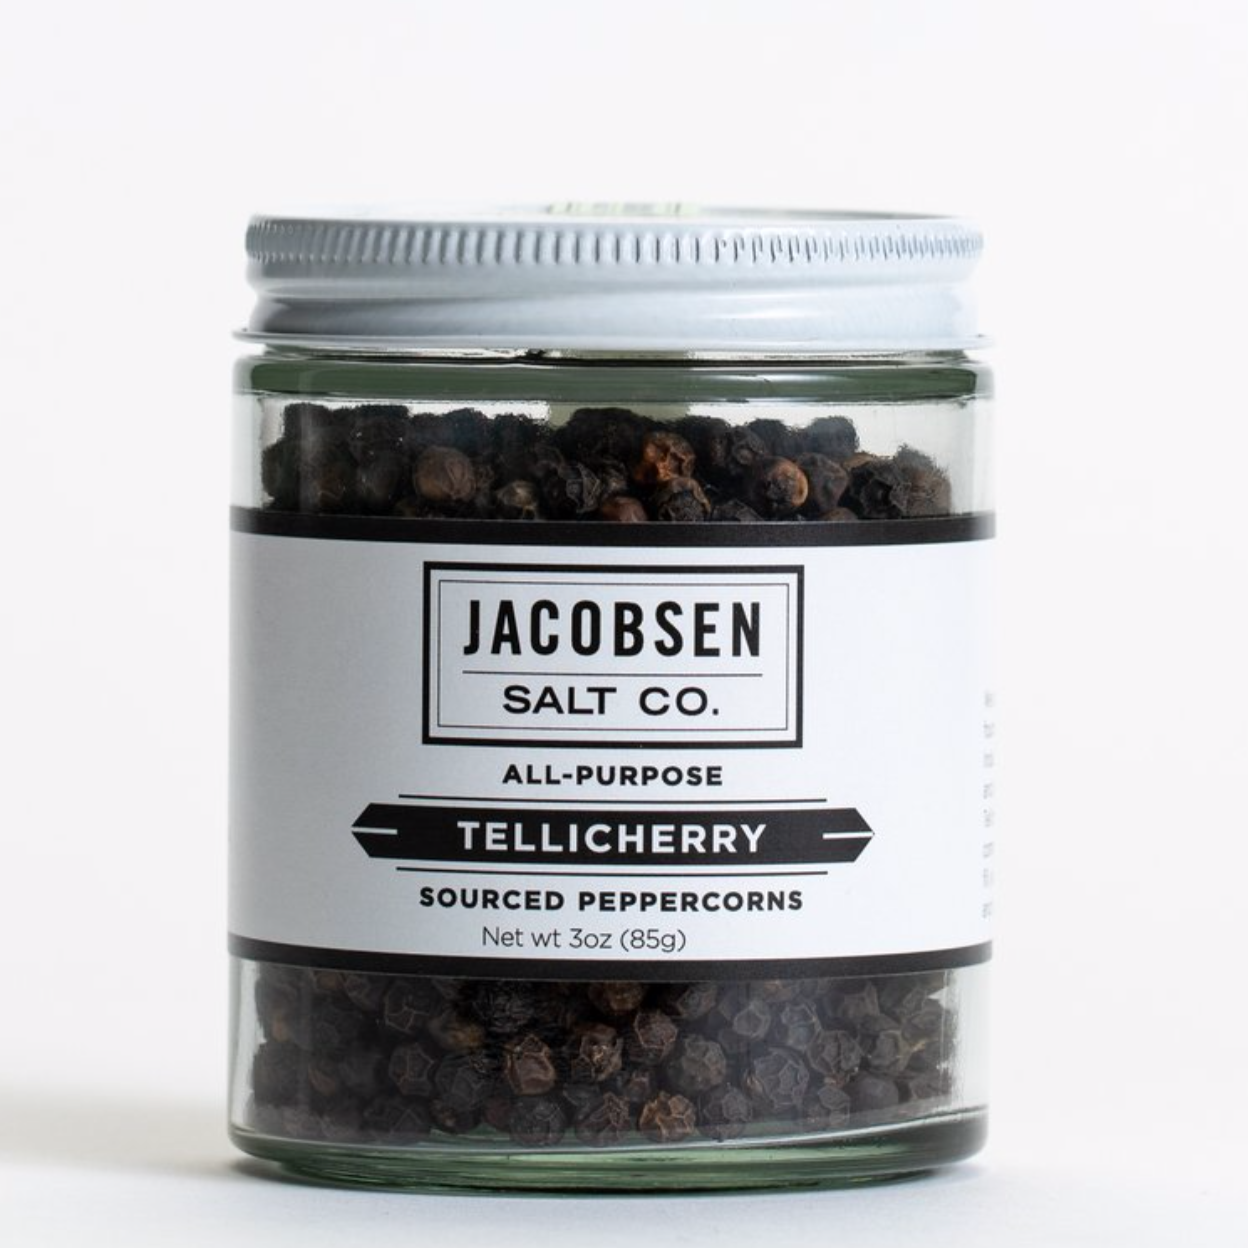 Jacobsen's whole Tellicherry peppercorn